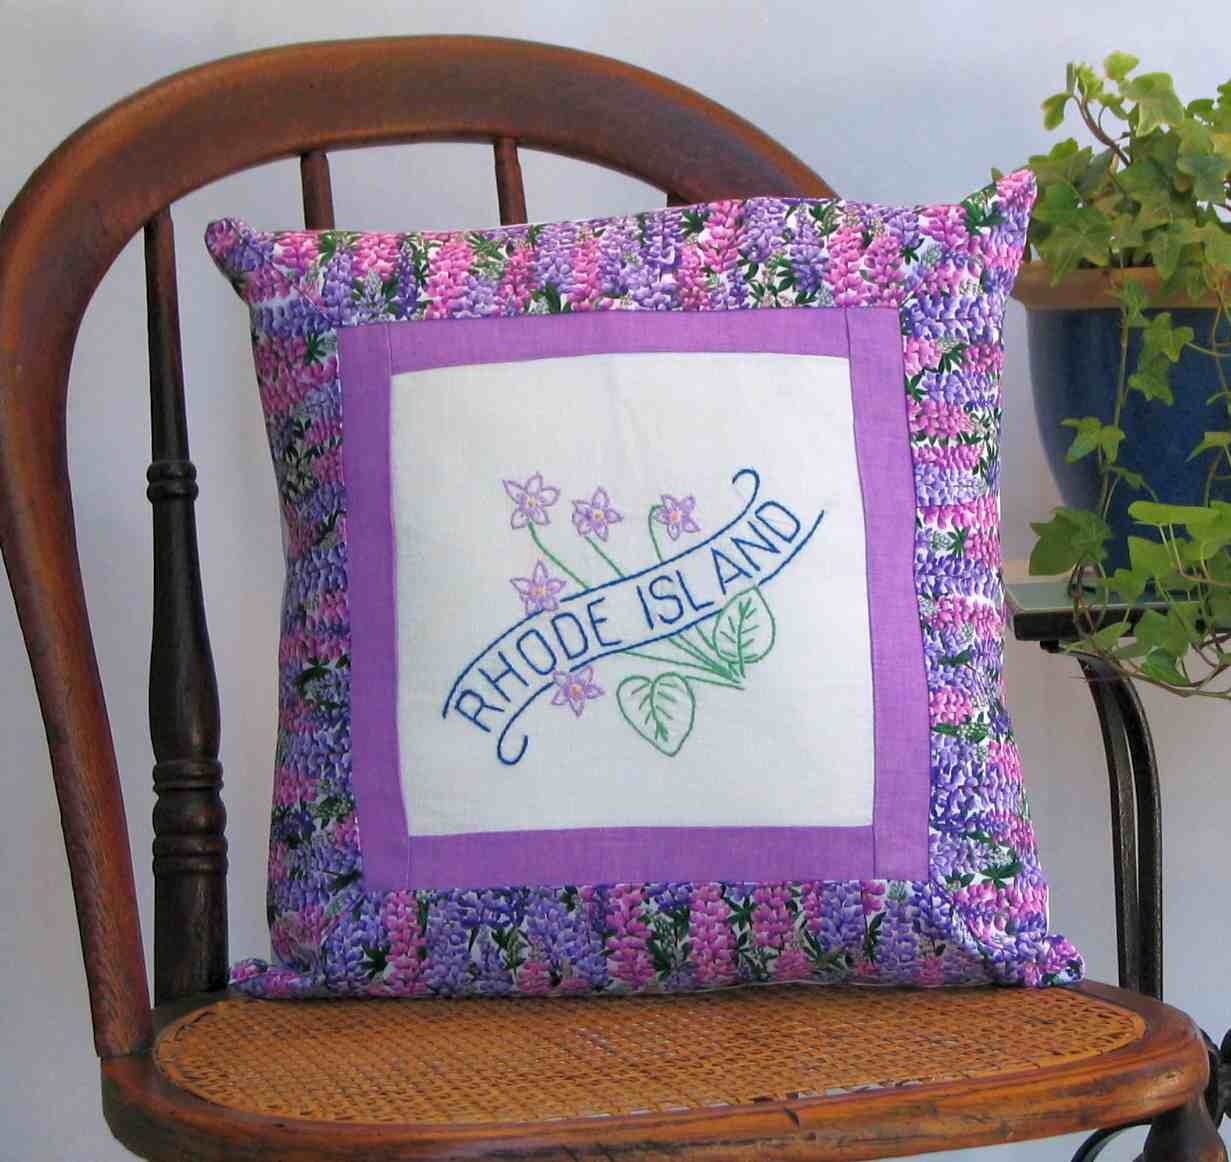 Rhode Island flower pillow cabin cottage farmhouse decor